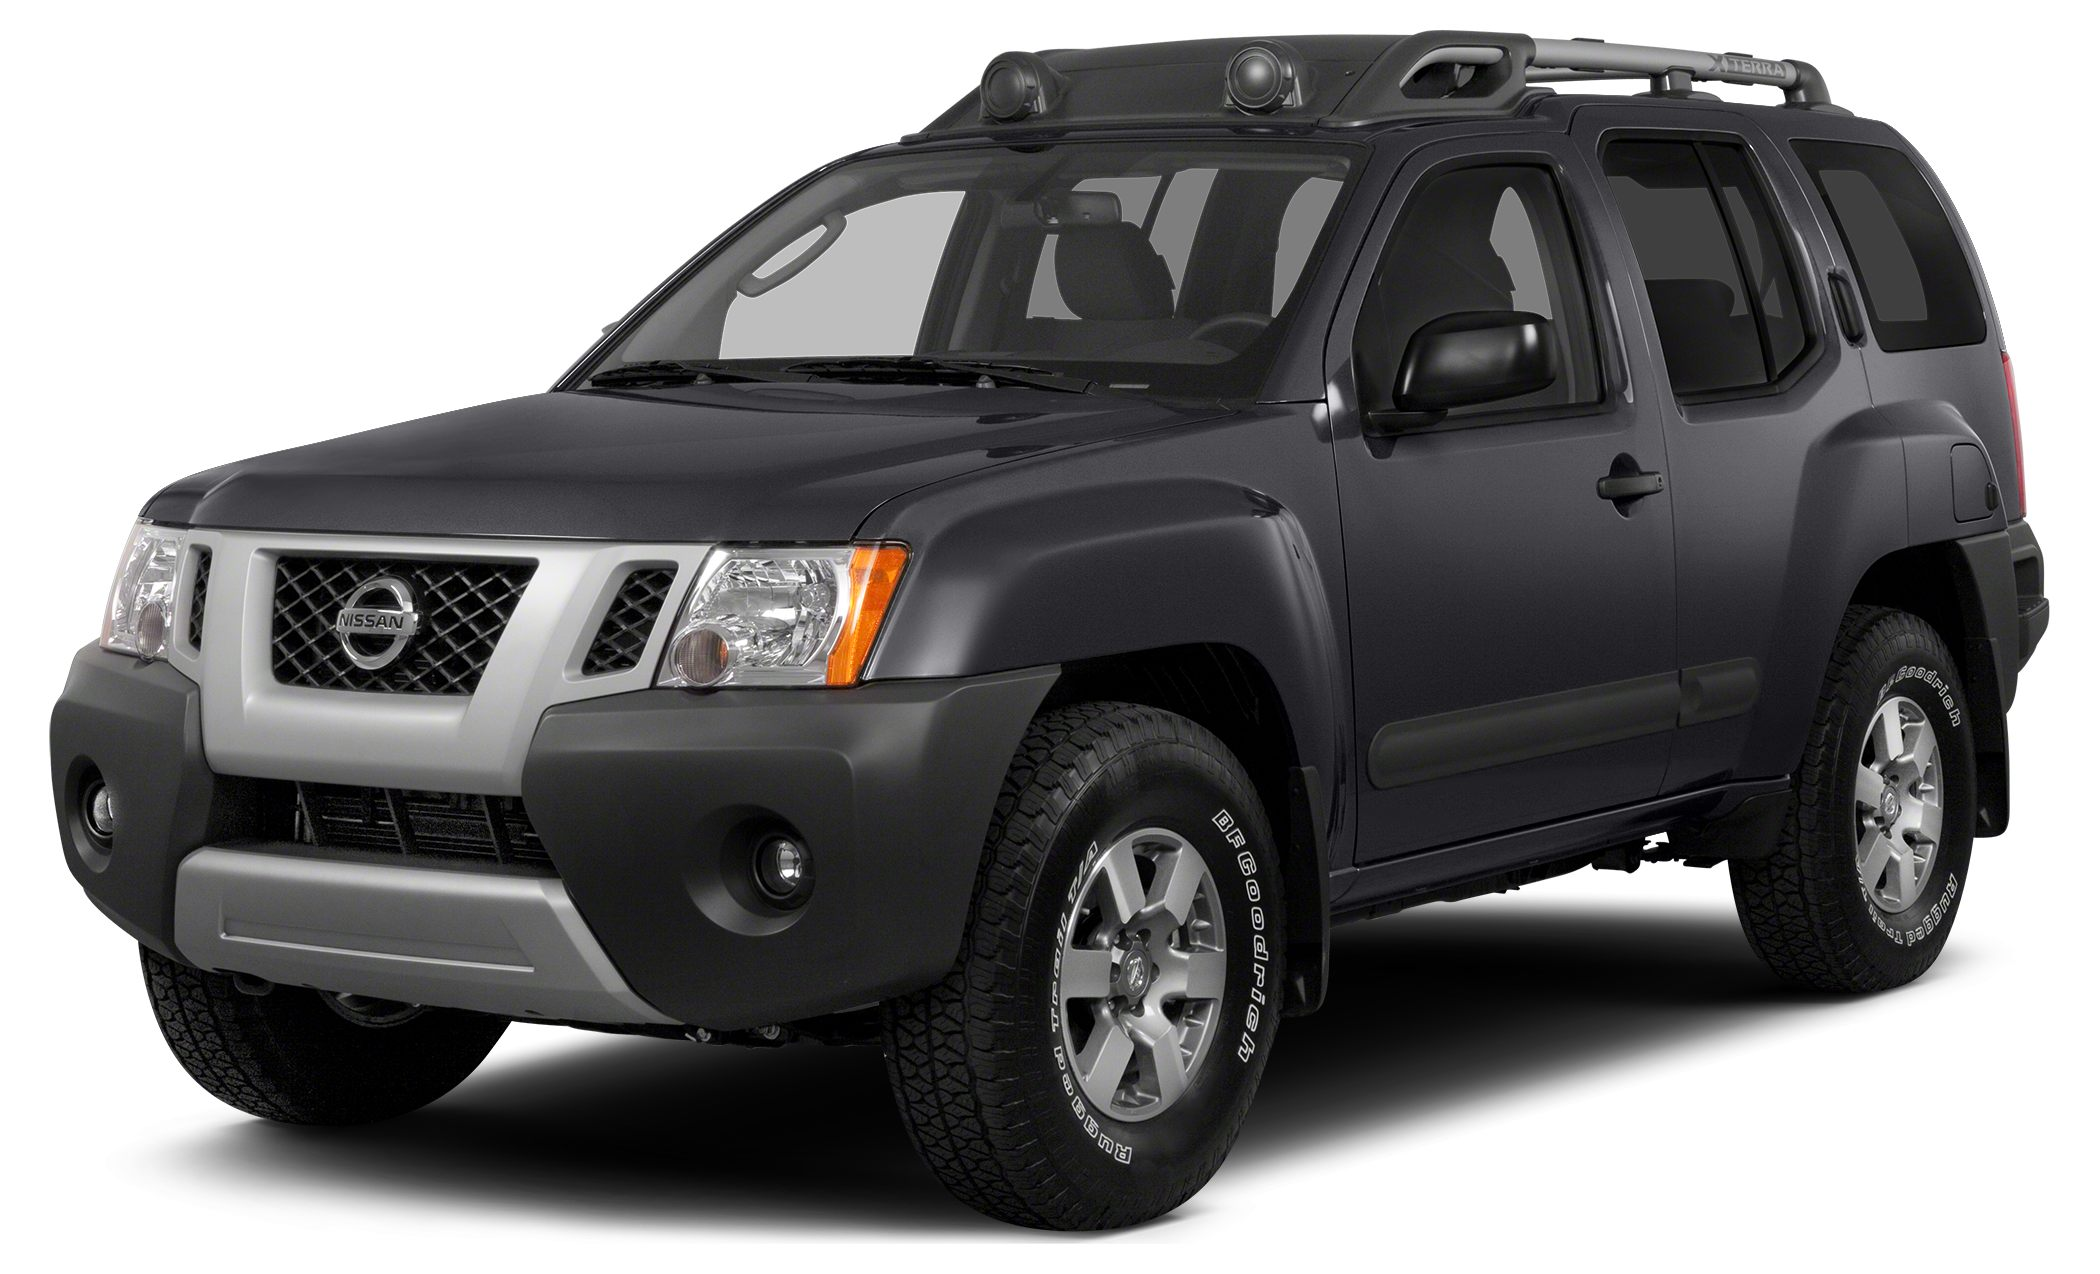 2014 Nissan Xterra S This 2014 Nissan Xterra S features a a power outlet stability control tract